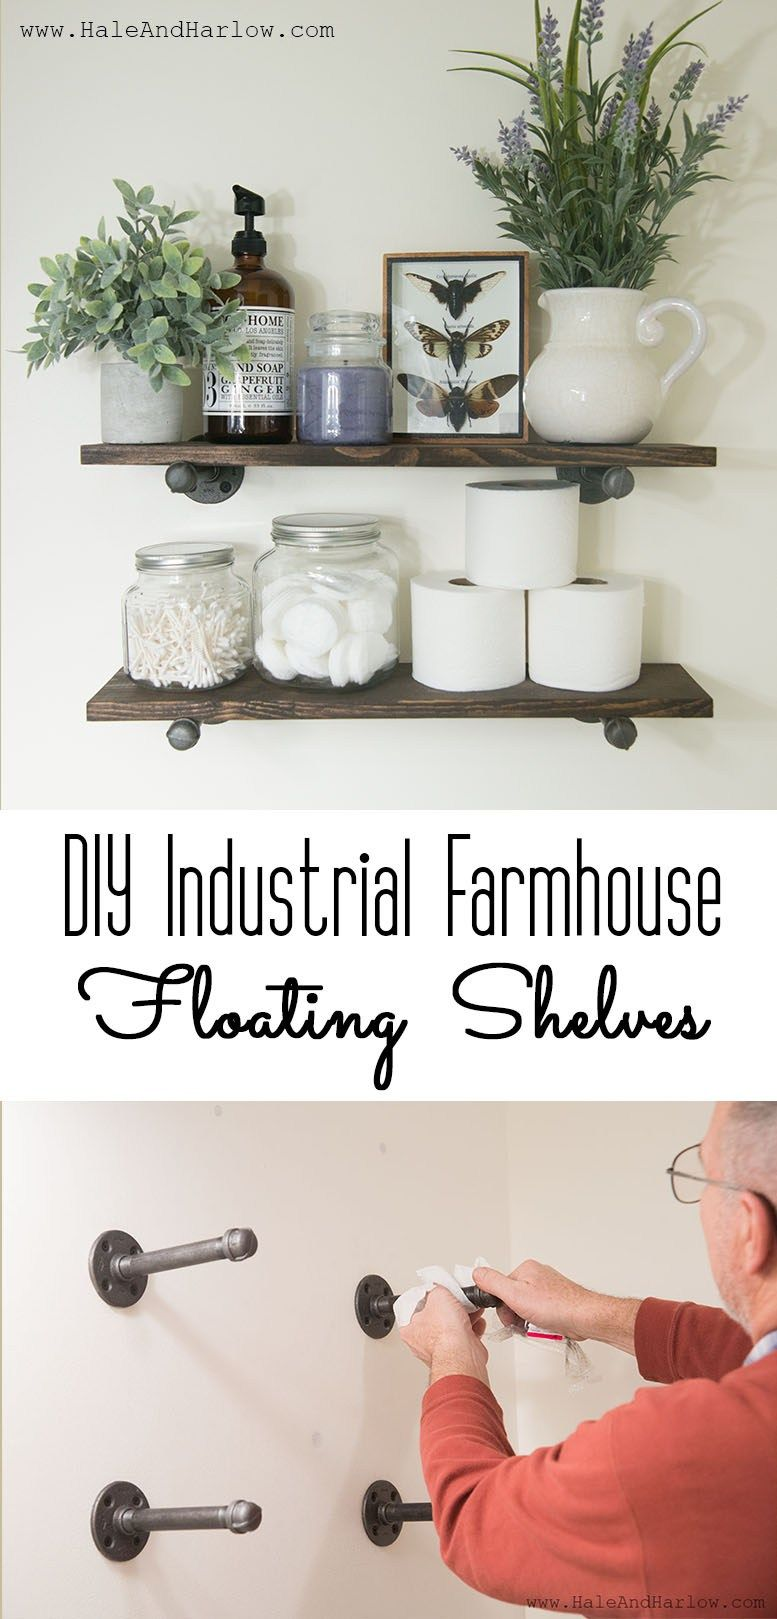 Diy industrial farmhouse floating shelves awesome - Accessories for bathroom shelves ...